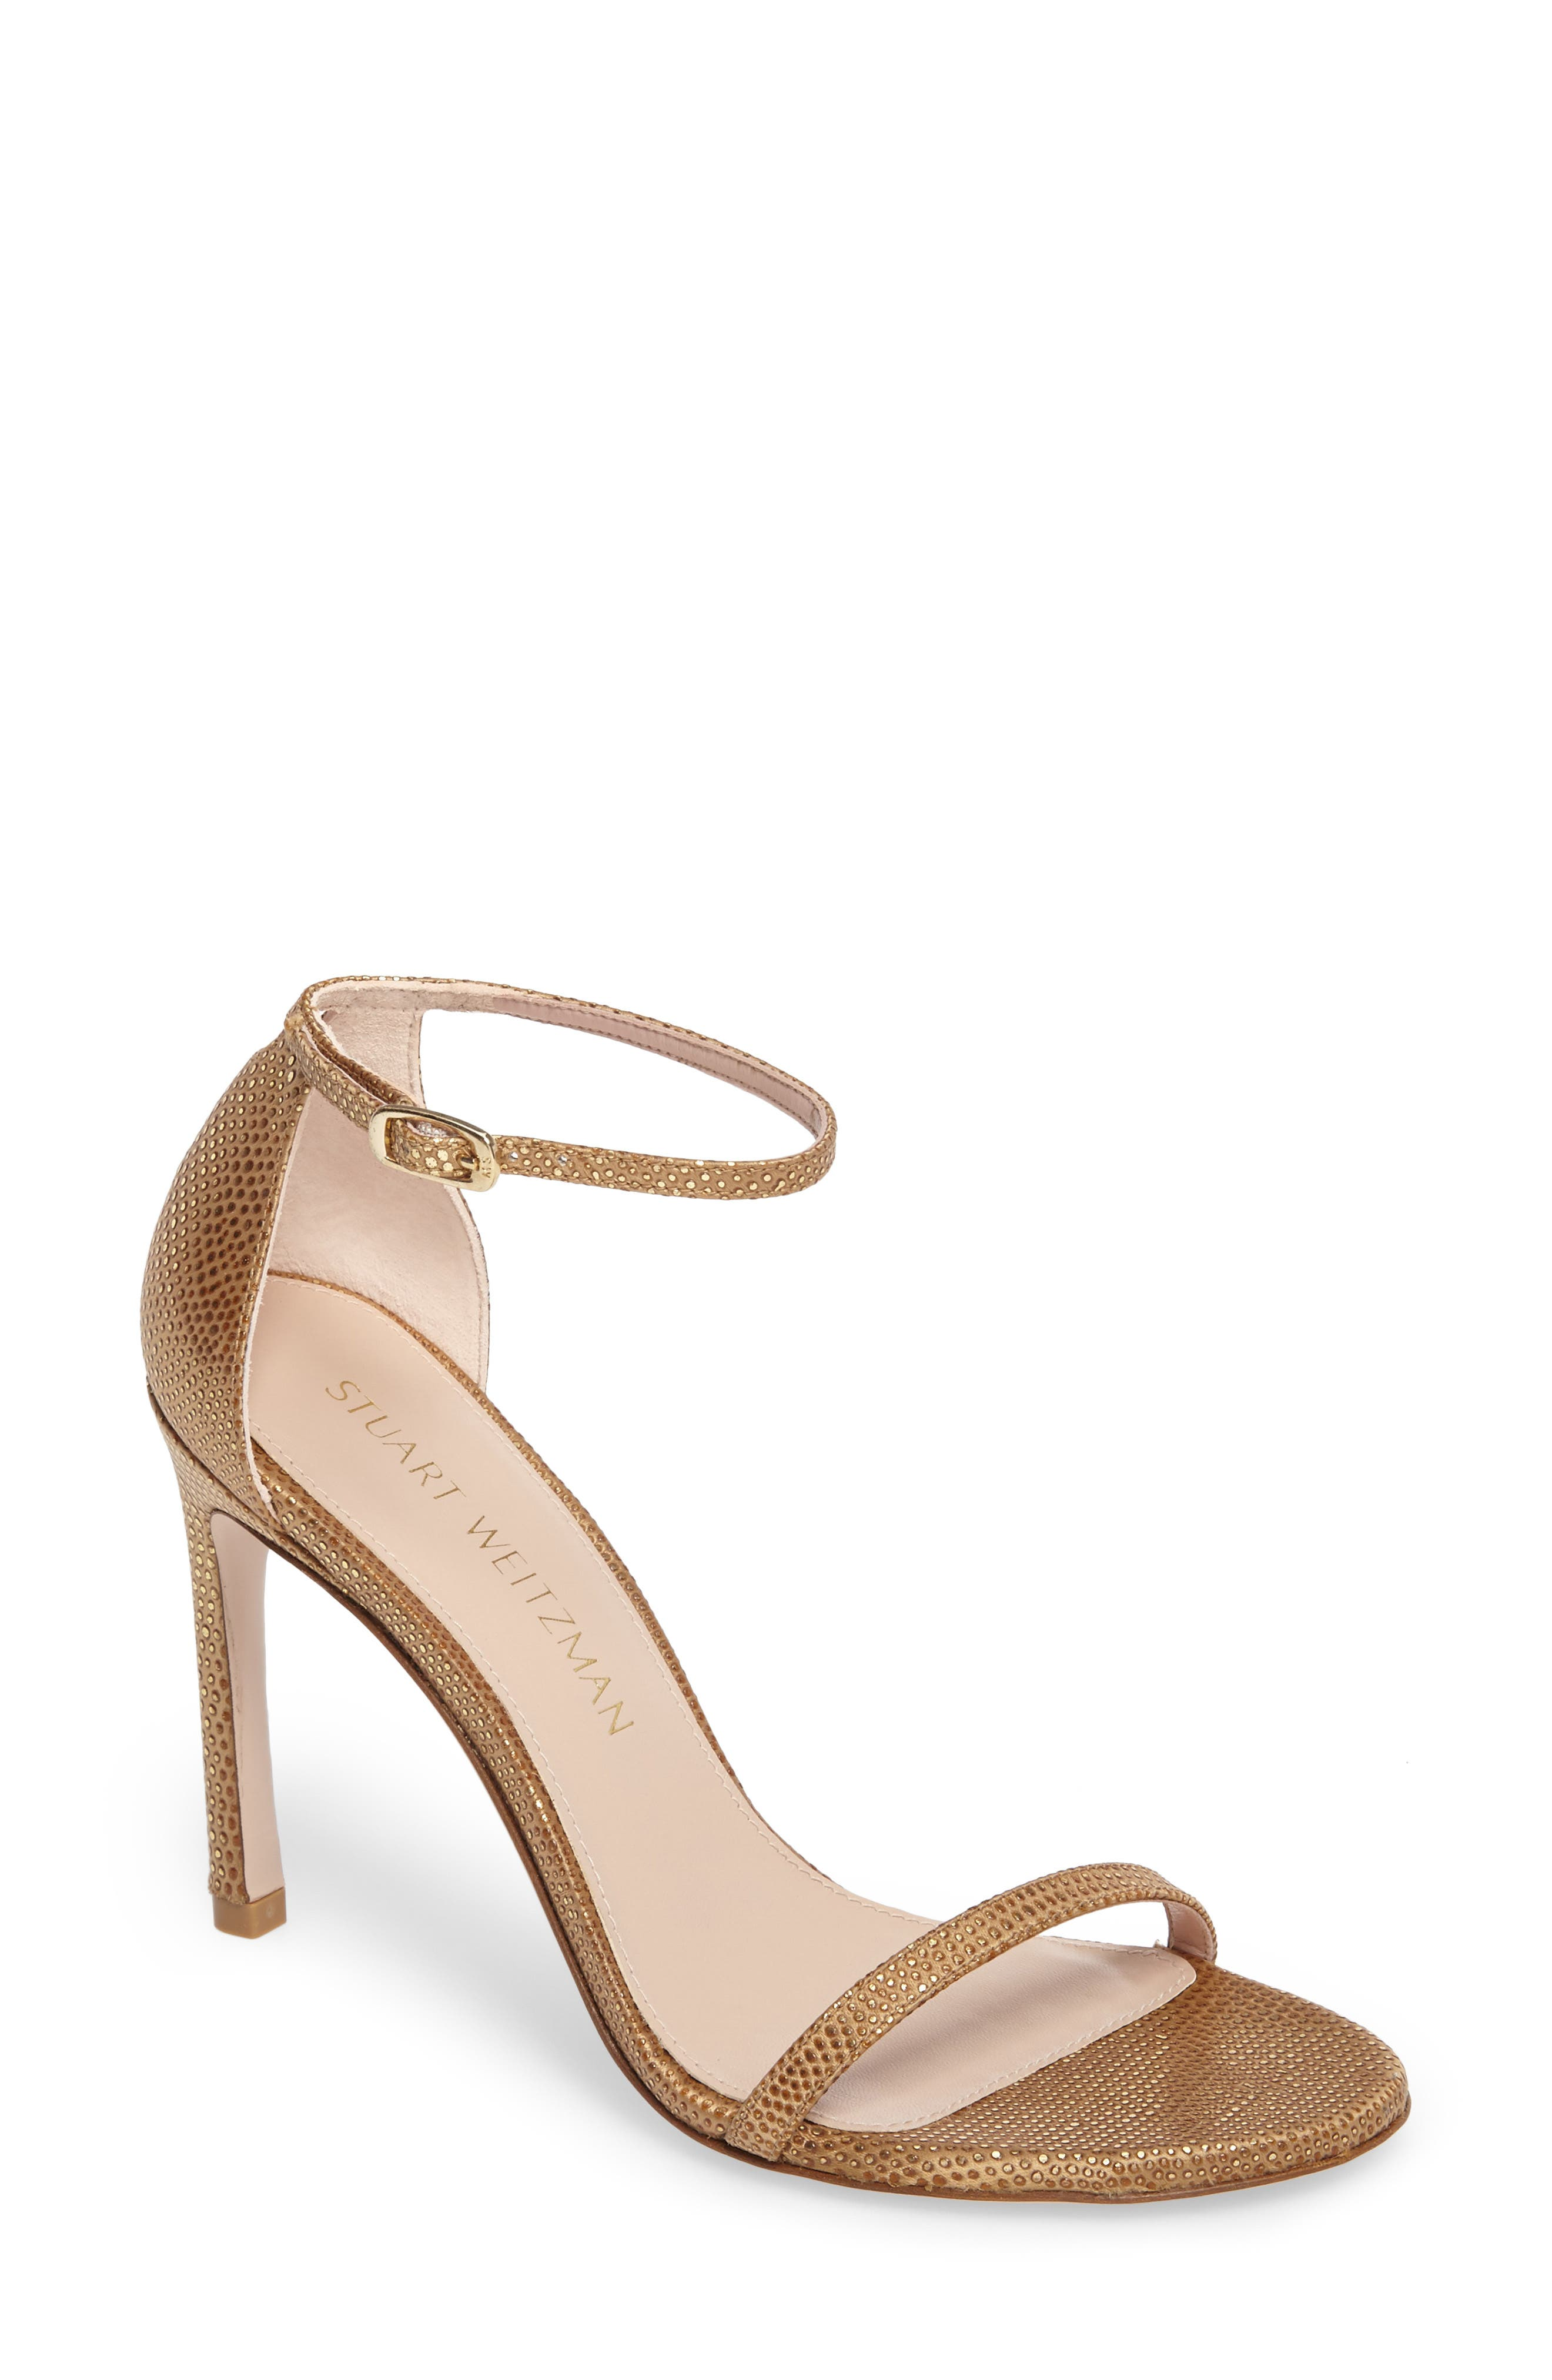 Nudistsong Ankle Strap Sandal,                             Main thumbnail 11, color,